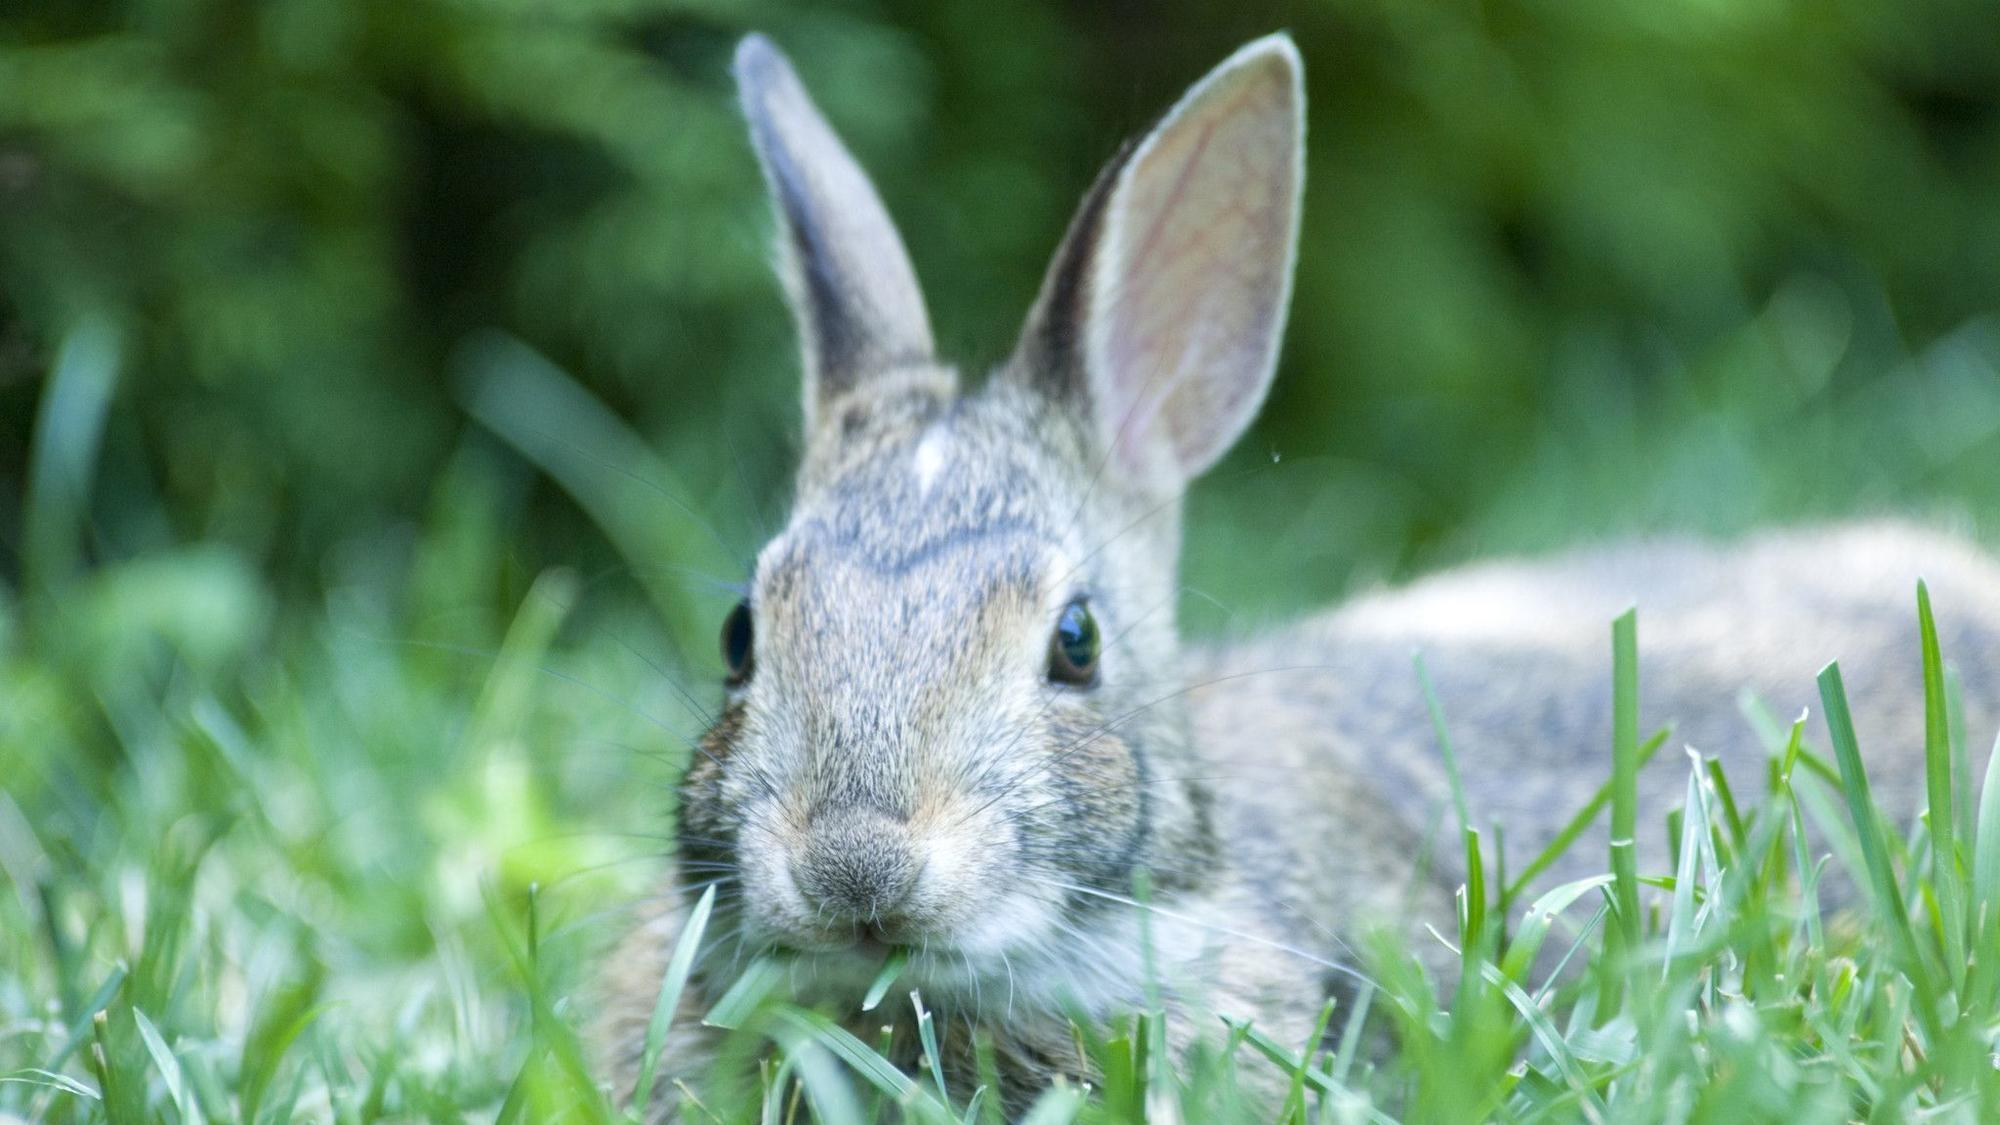 Rabbits feasting on your garden? Wire fencing is your friend ...